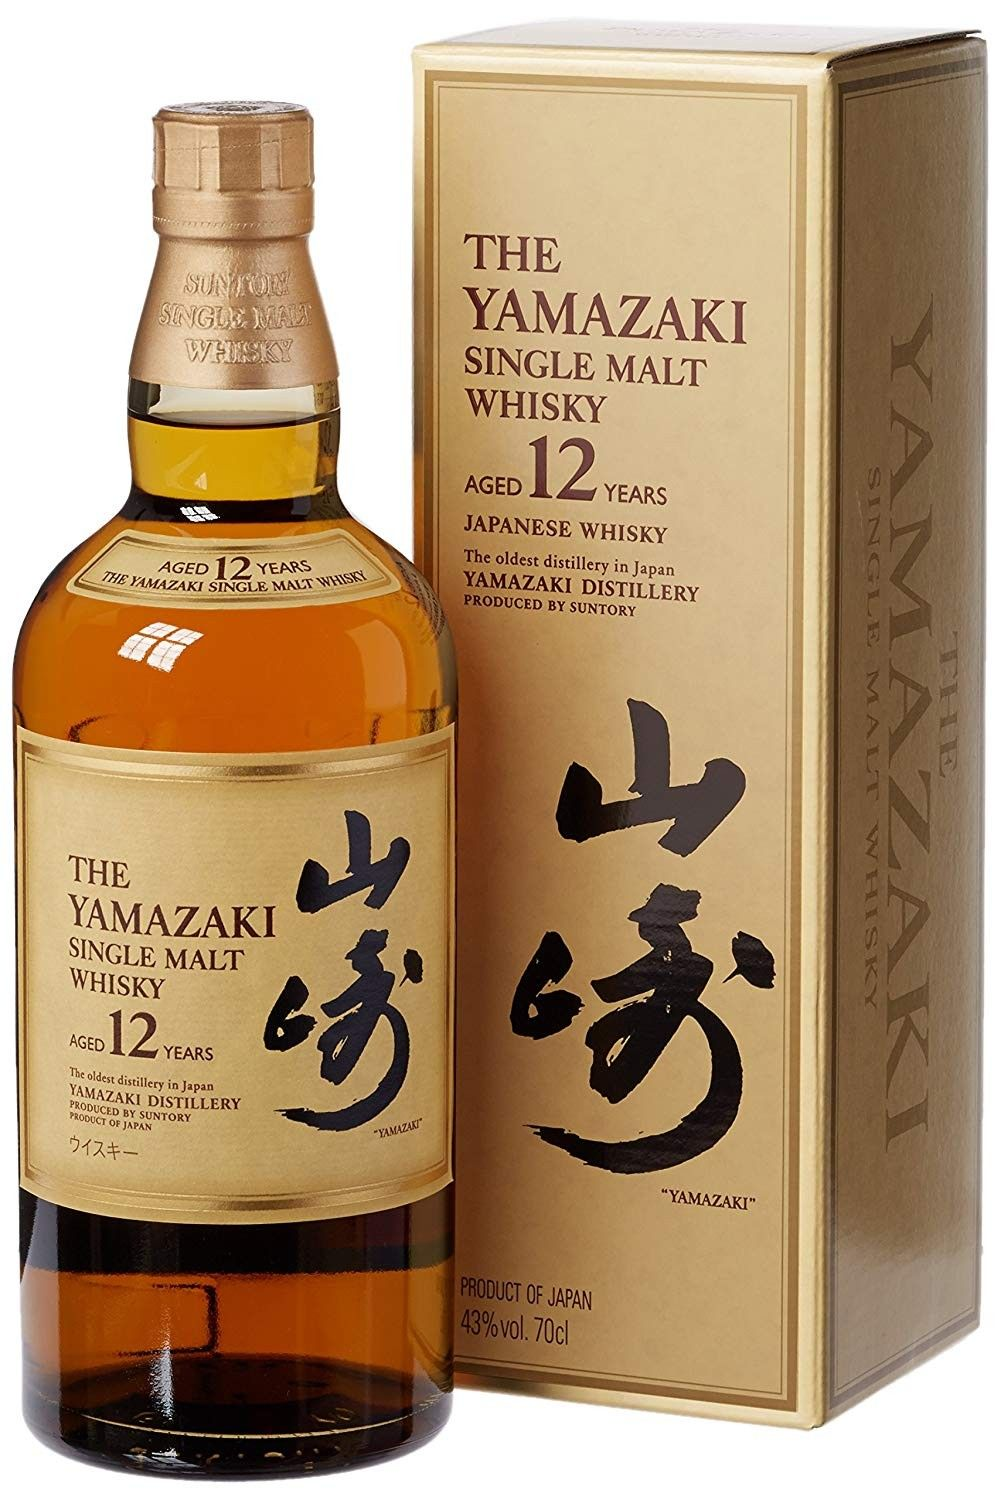 Suntory The Yamazaki Single Malt Whisky 12 Years Old 70cl Gift Box Malt Whisky Japanese Whisky Single Malt Whisky